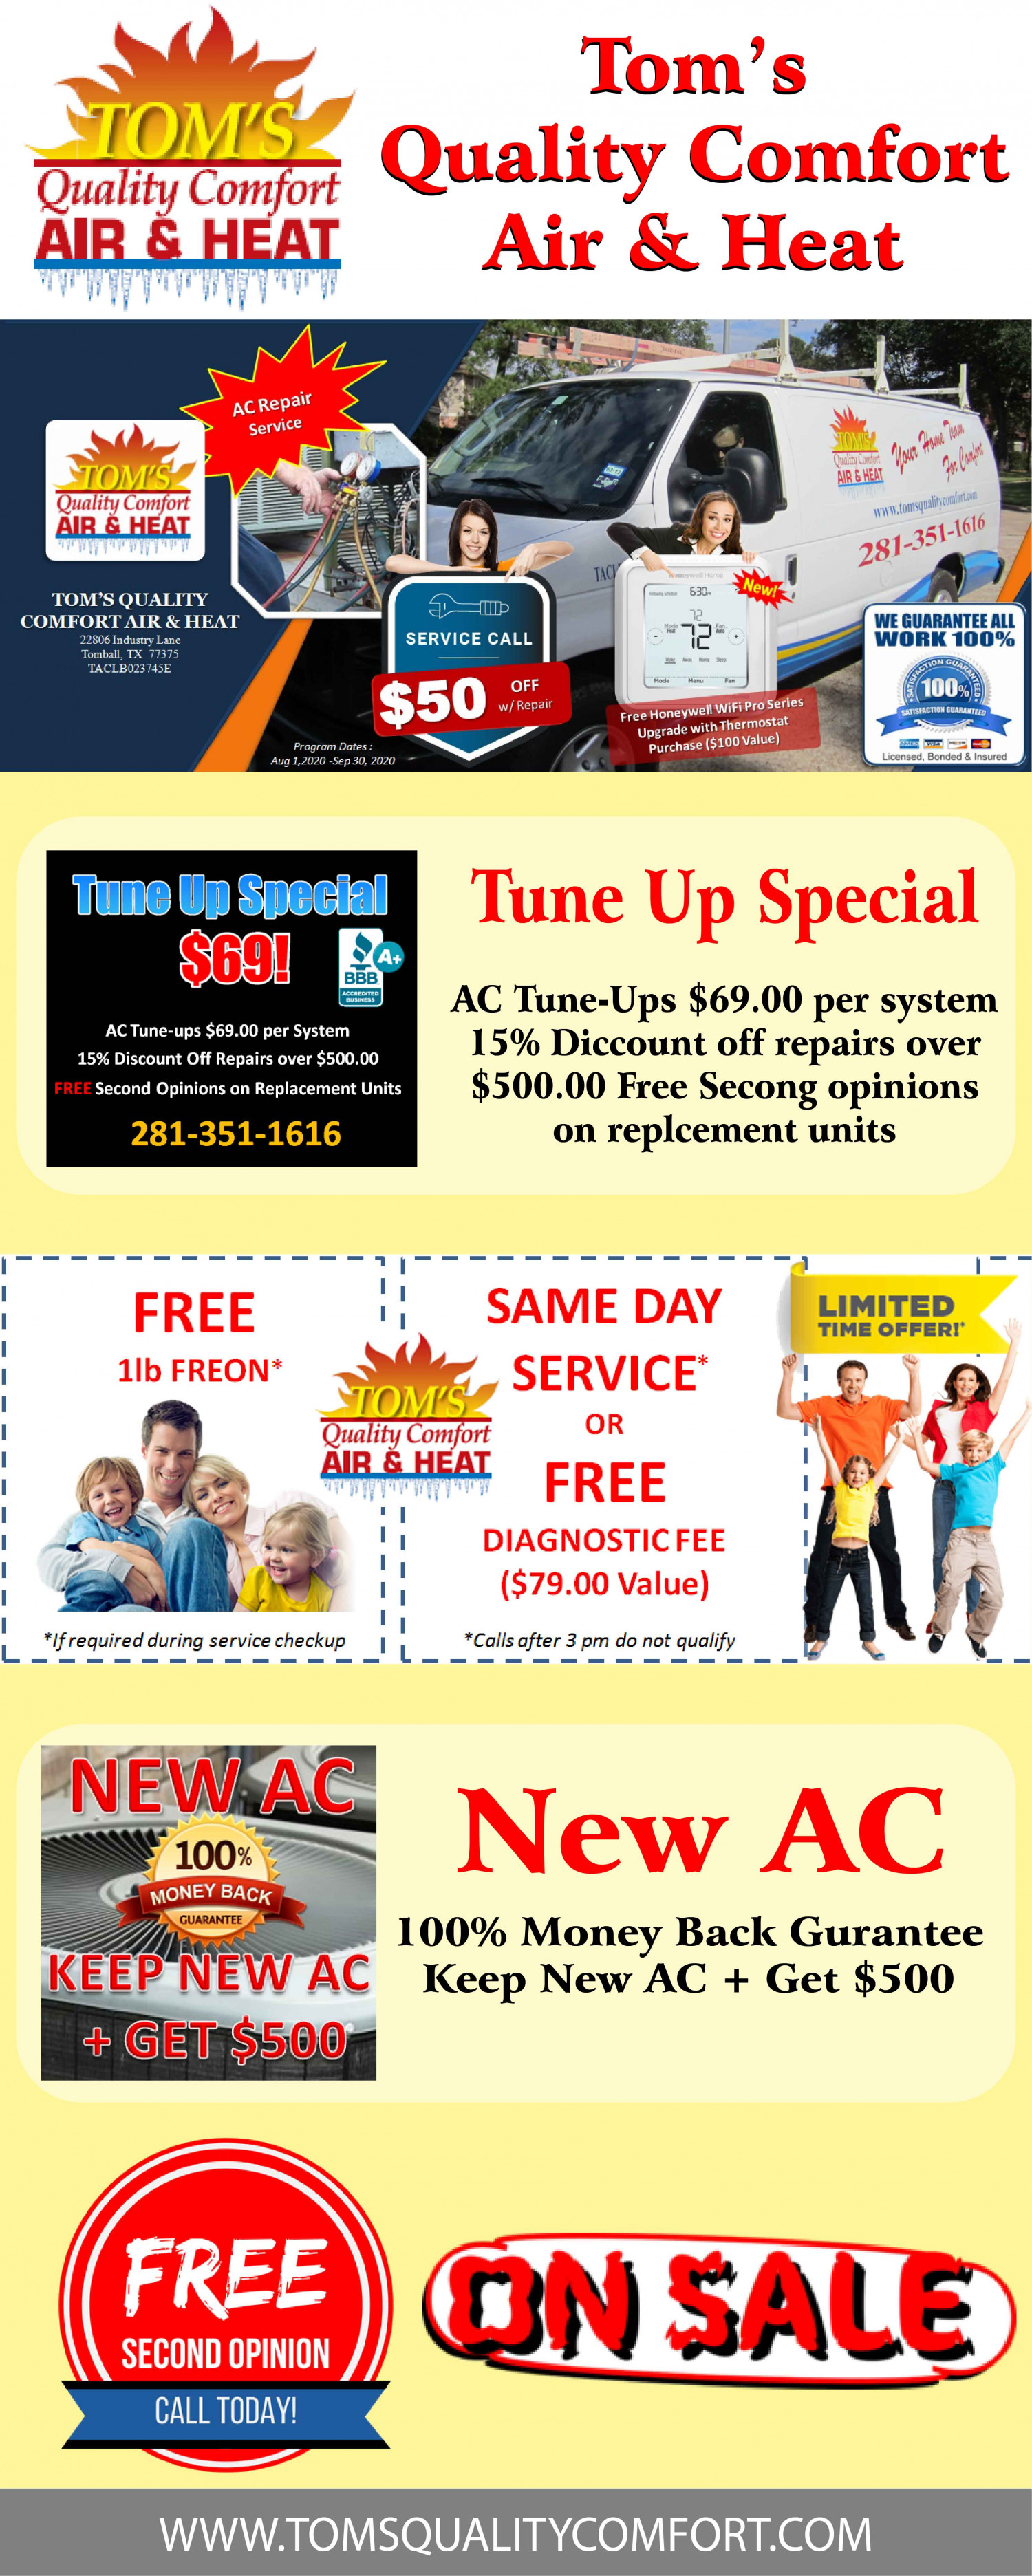 Air Conditioning Repair Tomball TX | Tom's Quality Comfort Infographic